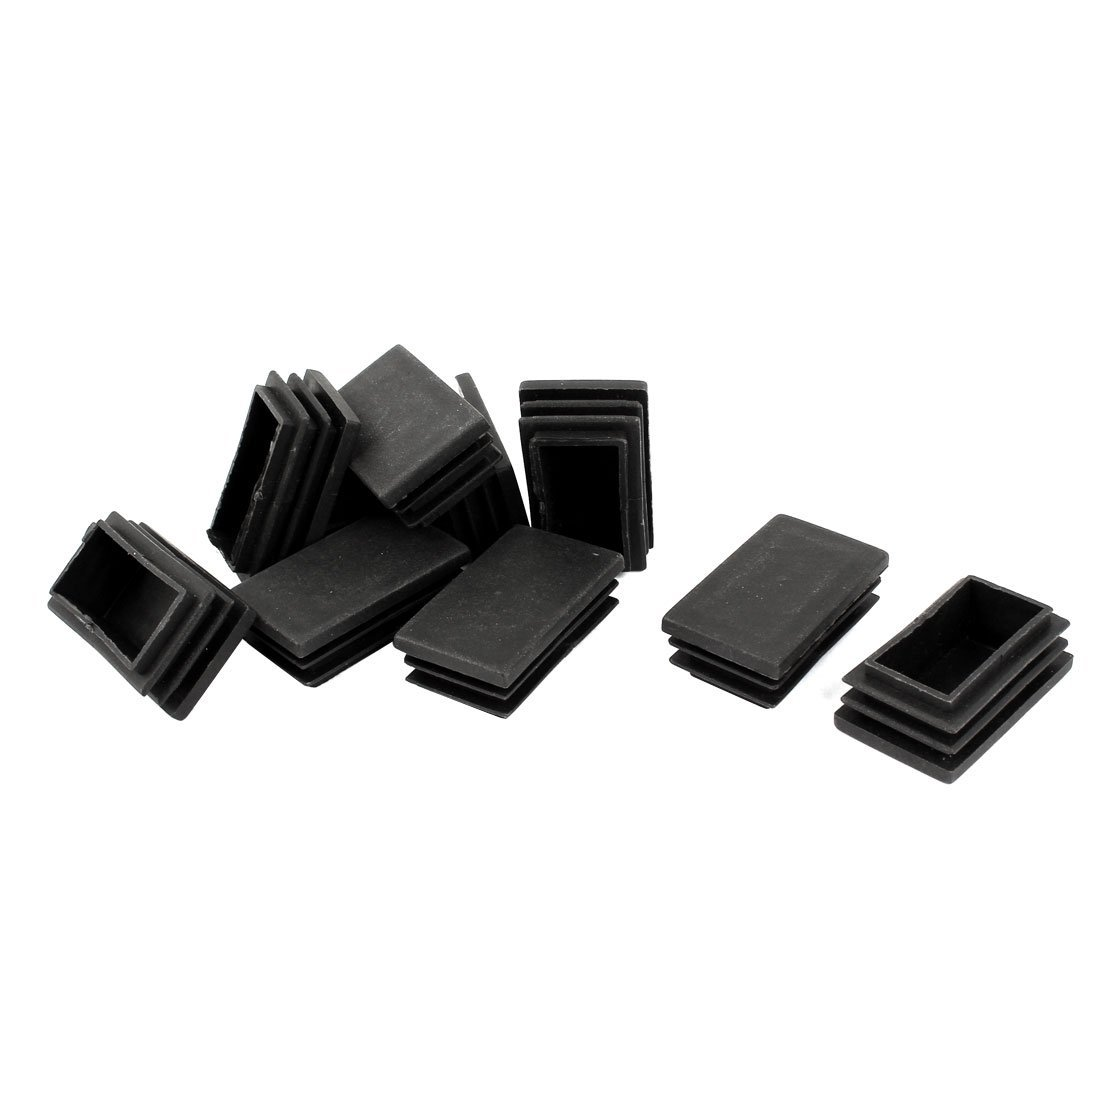 Hot Sale Plastic, Rectangular, With Cover End Pipe Plug 50 Mm X 30 Mm, 10 Pieces